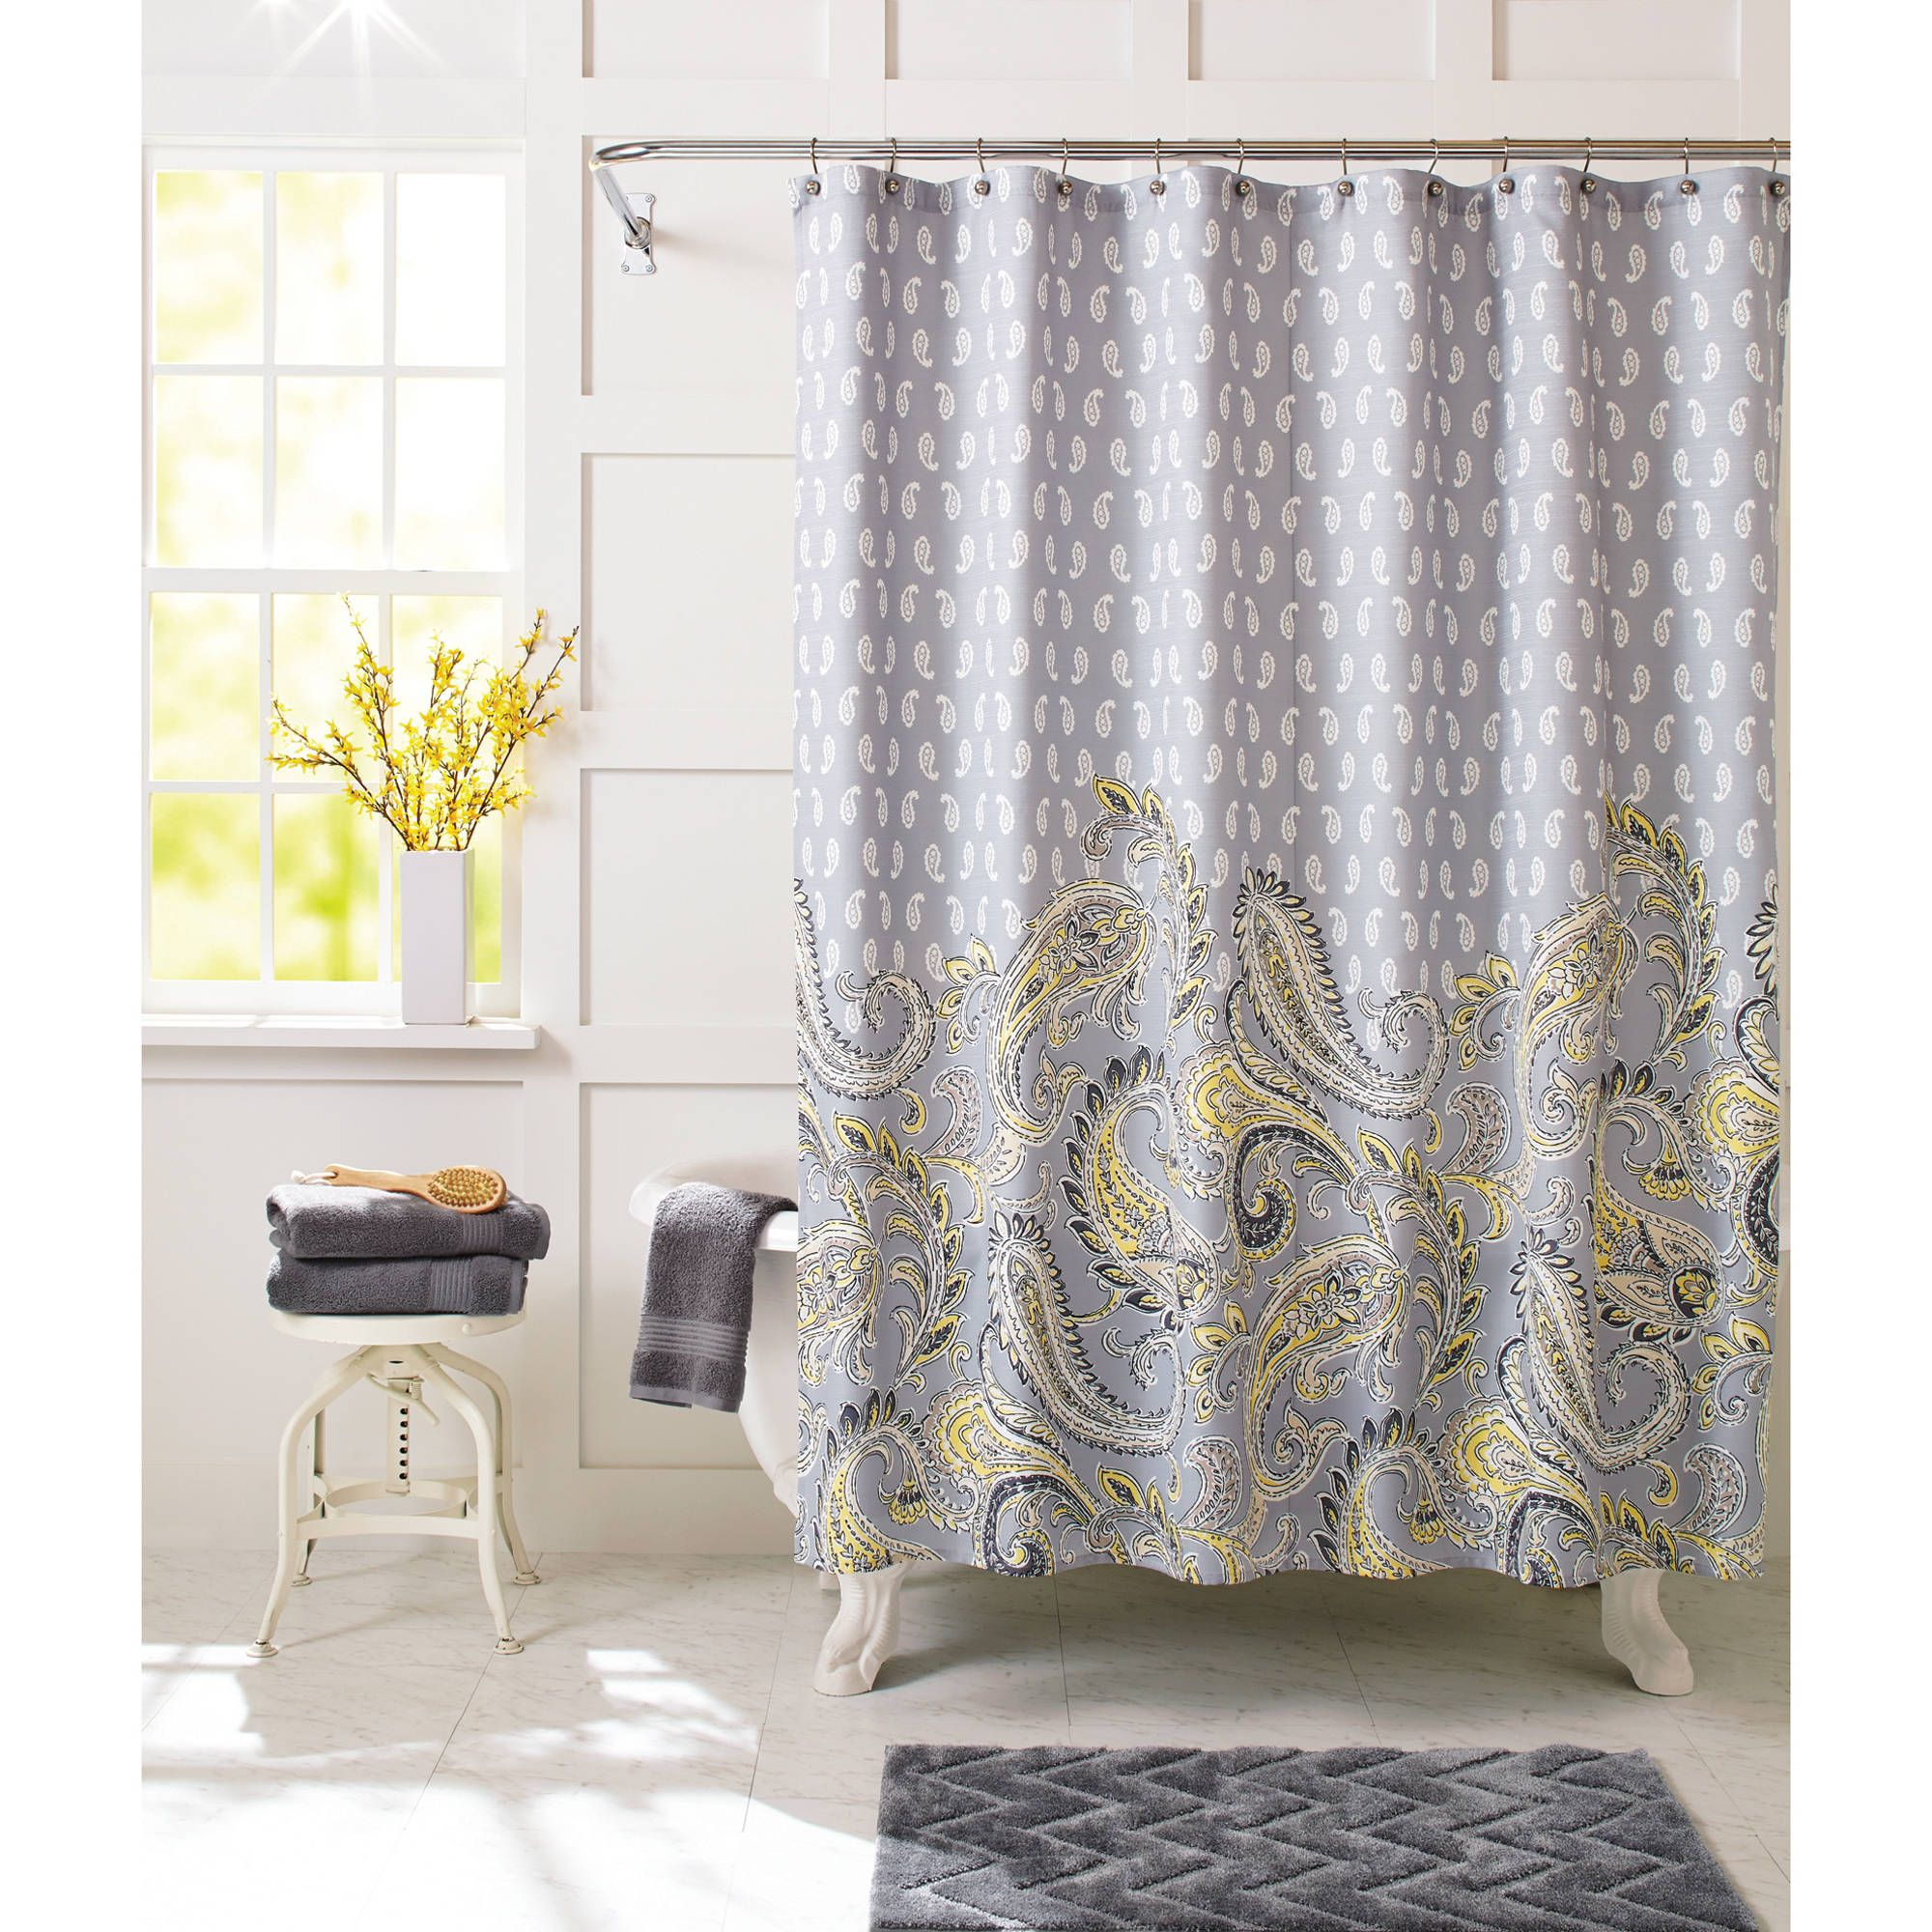 eb98791fe9cf5ff53513aaadf755b39b - Better Homes And Gardens Medallion Shower Curtain